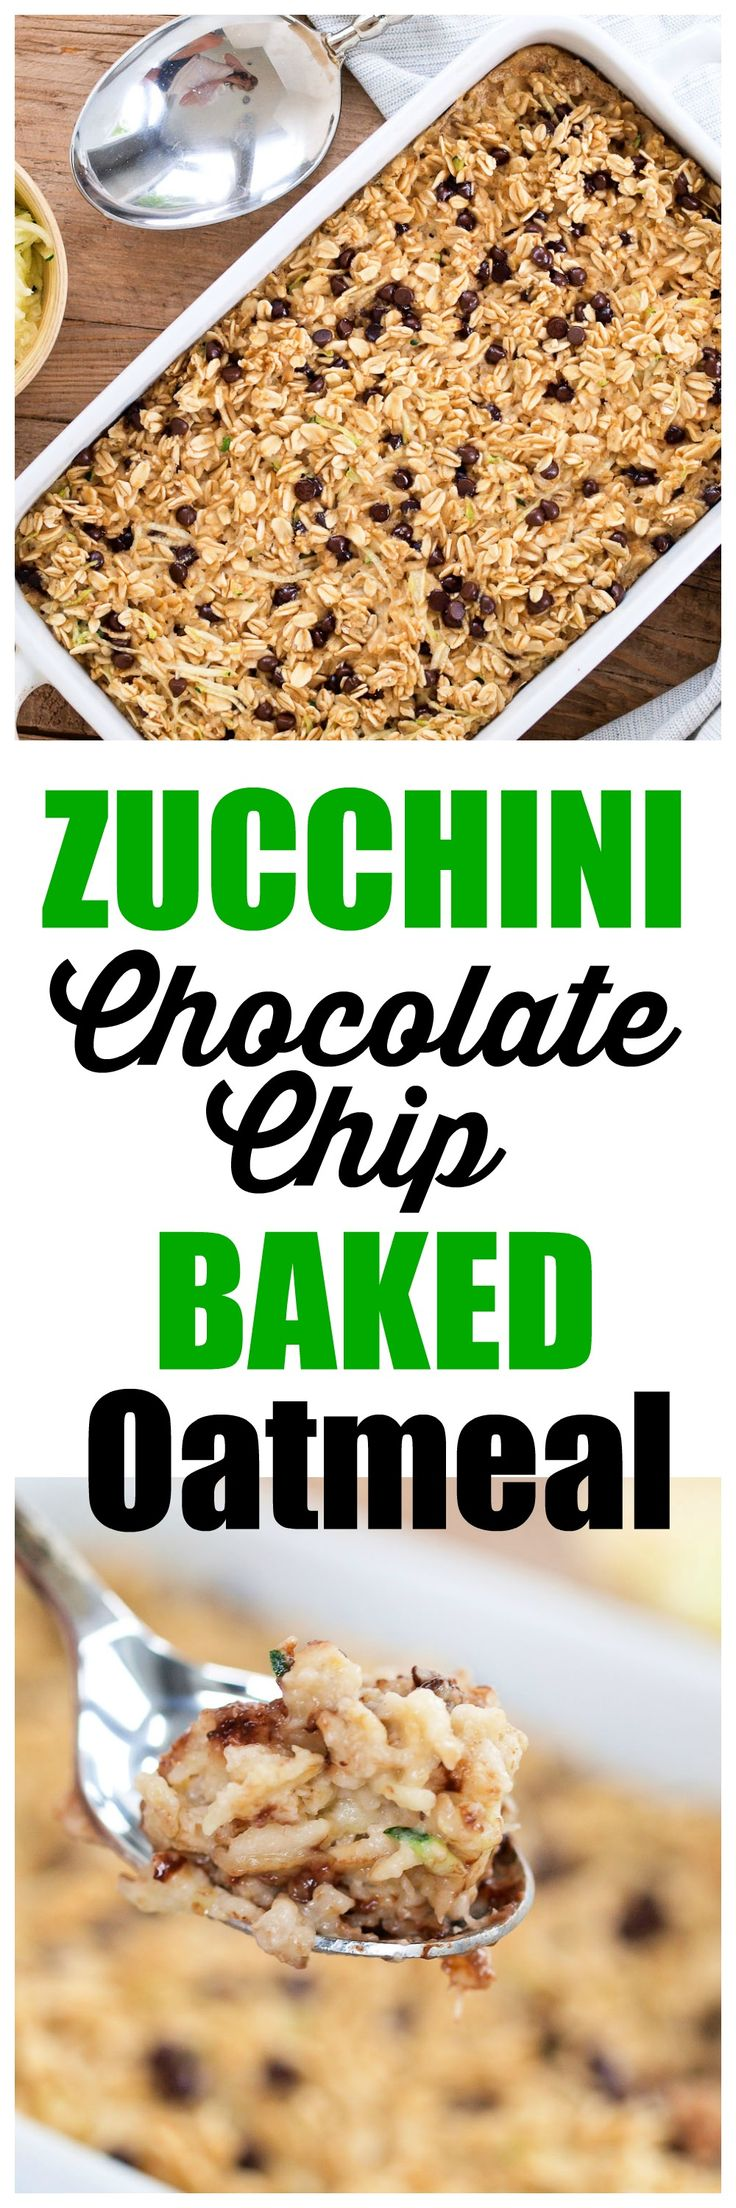 Zucchini Chocolate Chip Baked Oatmeal recipe Great healthy breakfast recipe to get your kids eating more vegetables